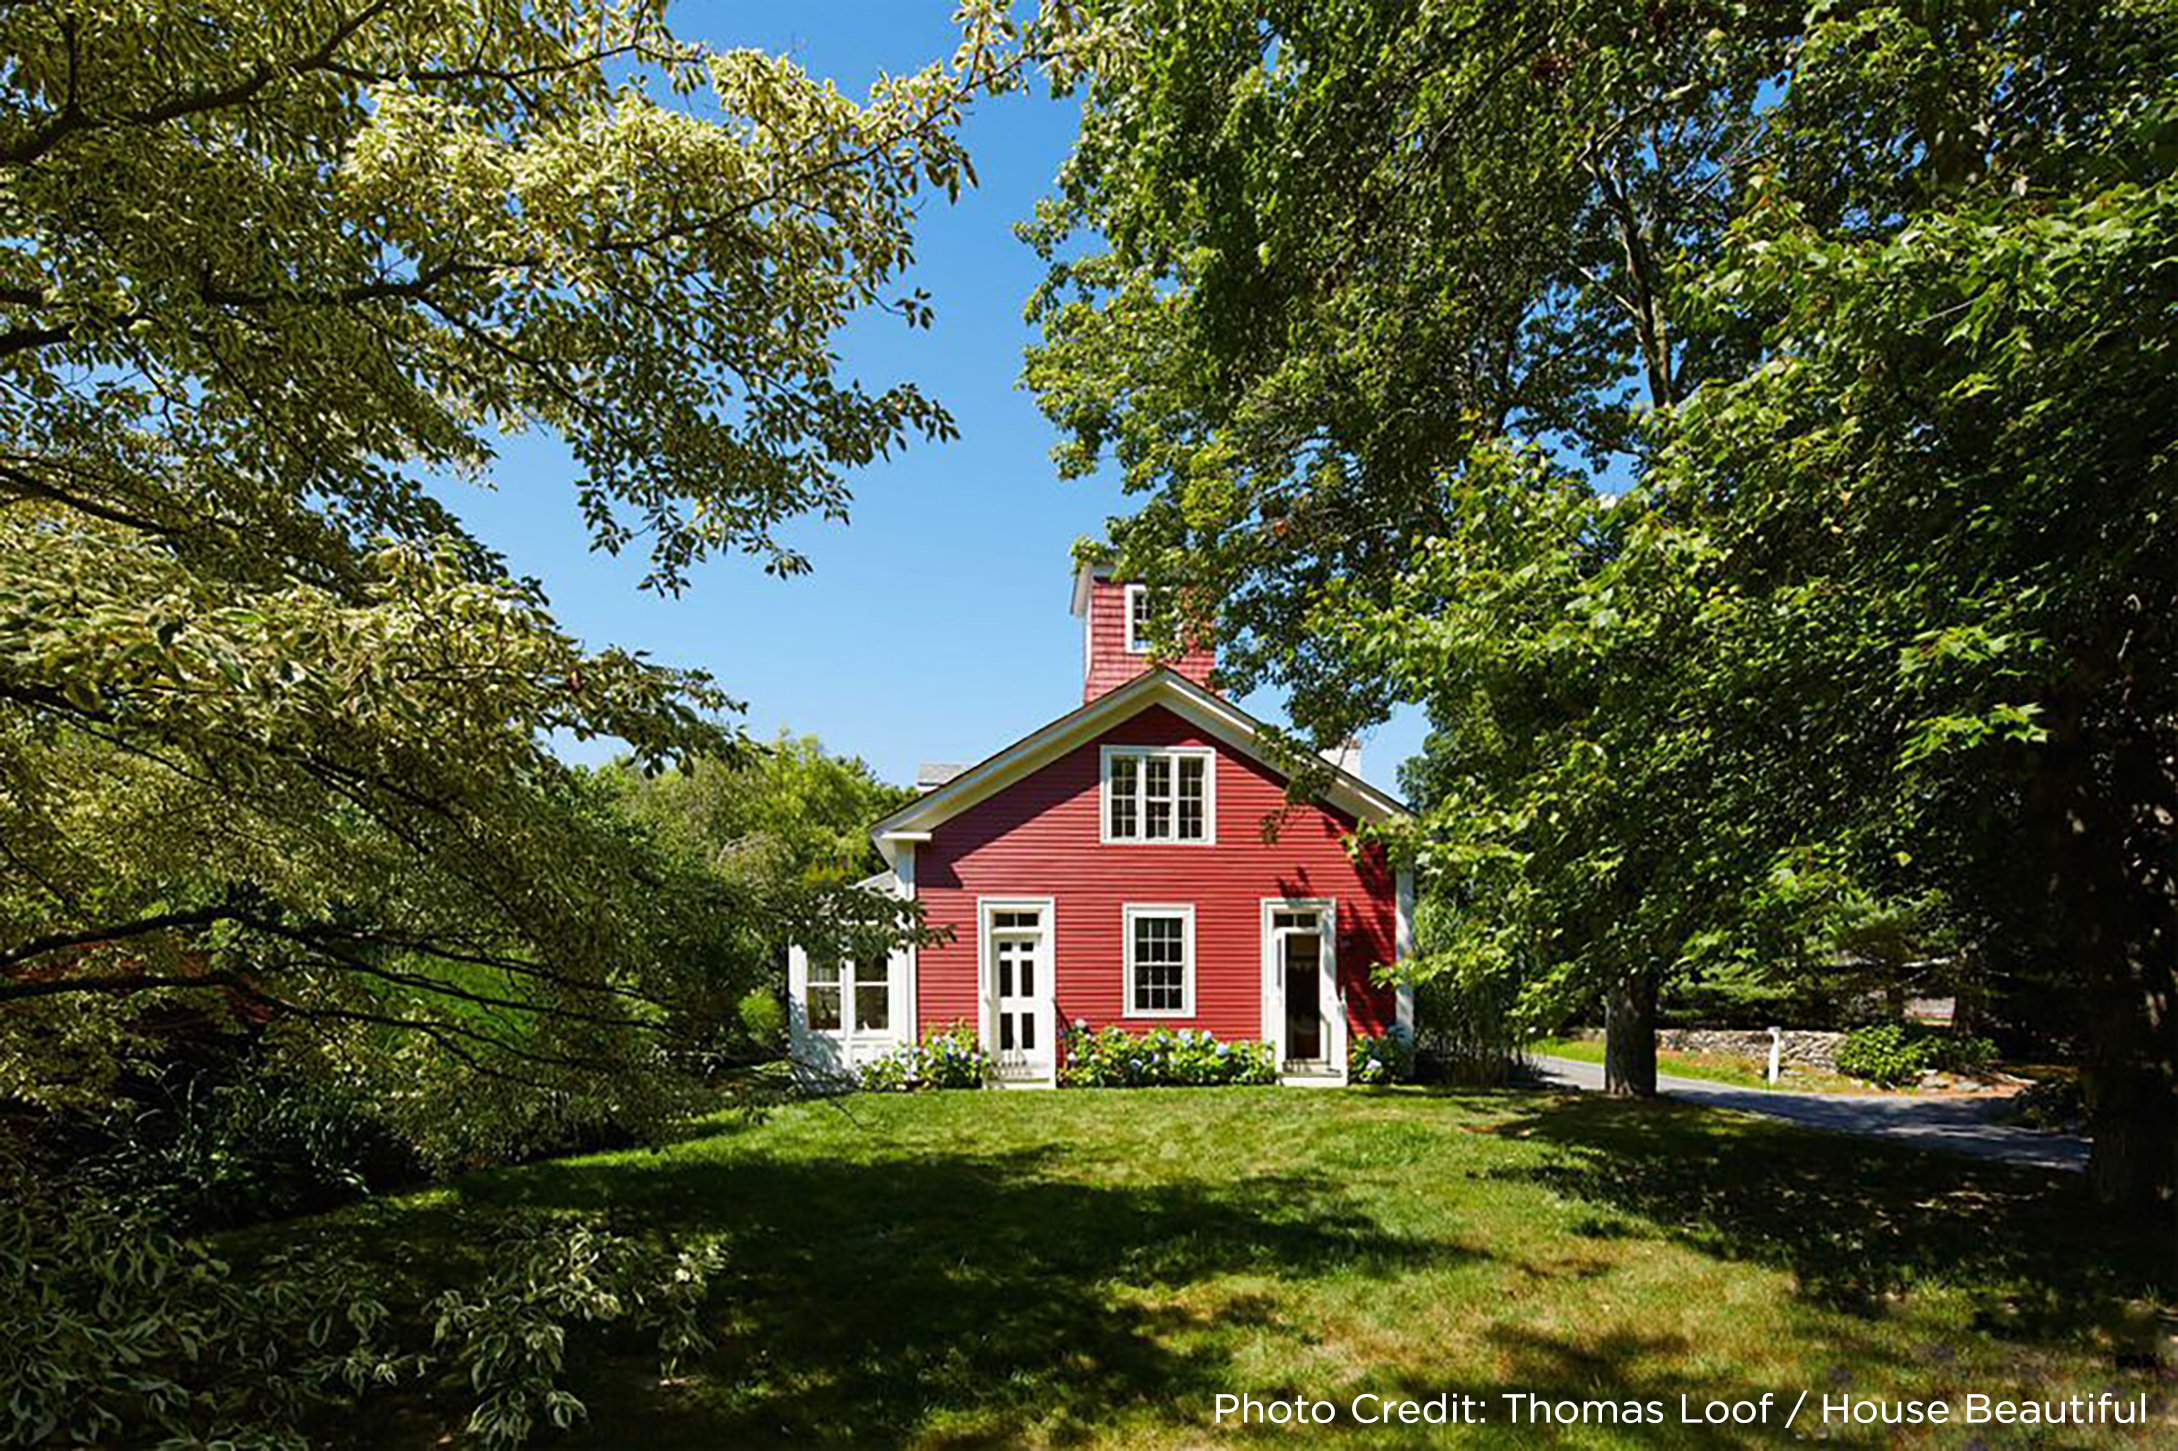 LILA DELMAN REAL ESTATE INTRODUCES MIDDLETOWN'S 'PEABODY SCHOOLHOUSE' TO MARKET